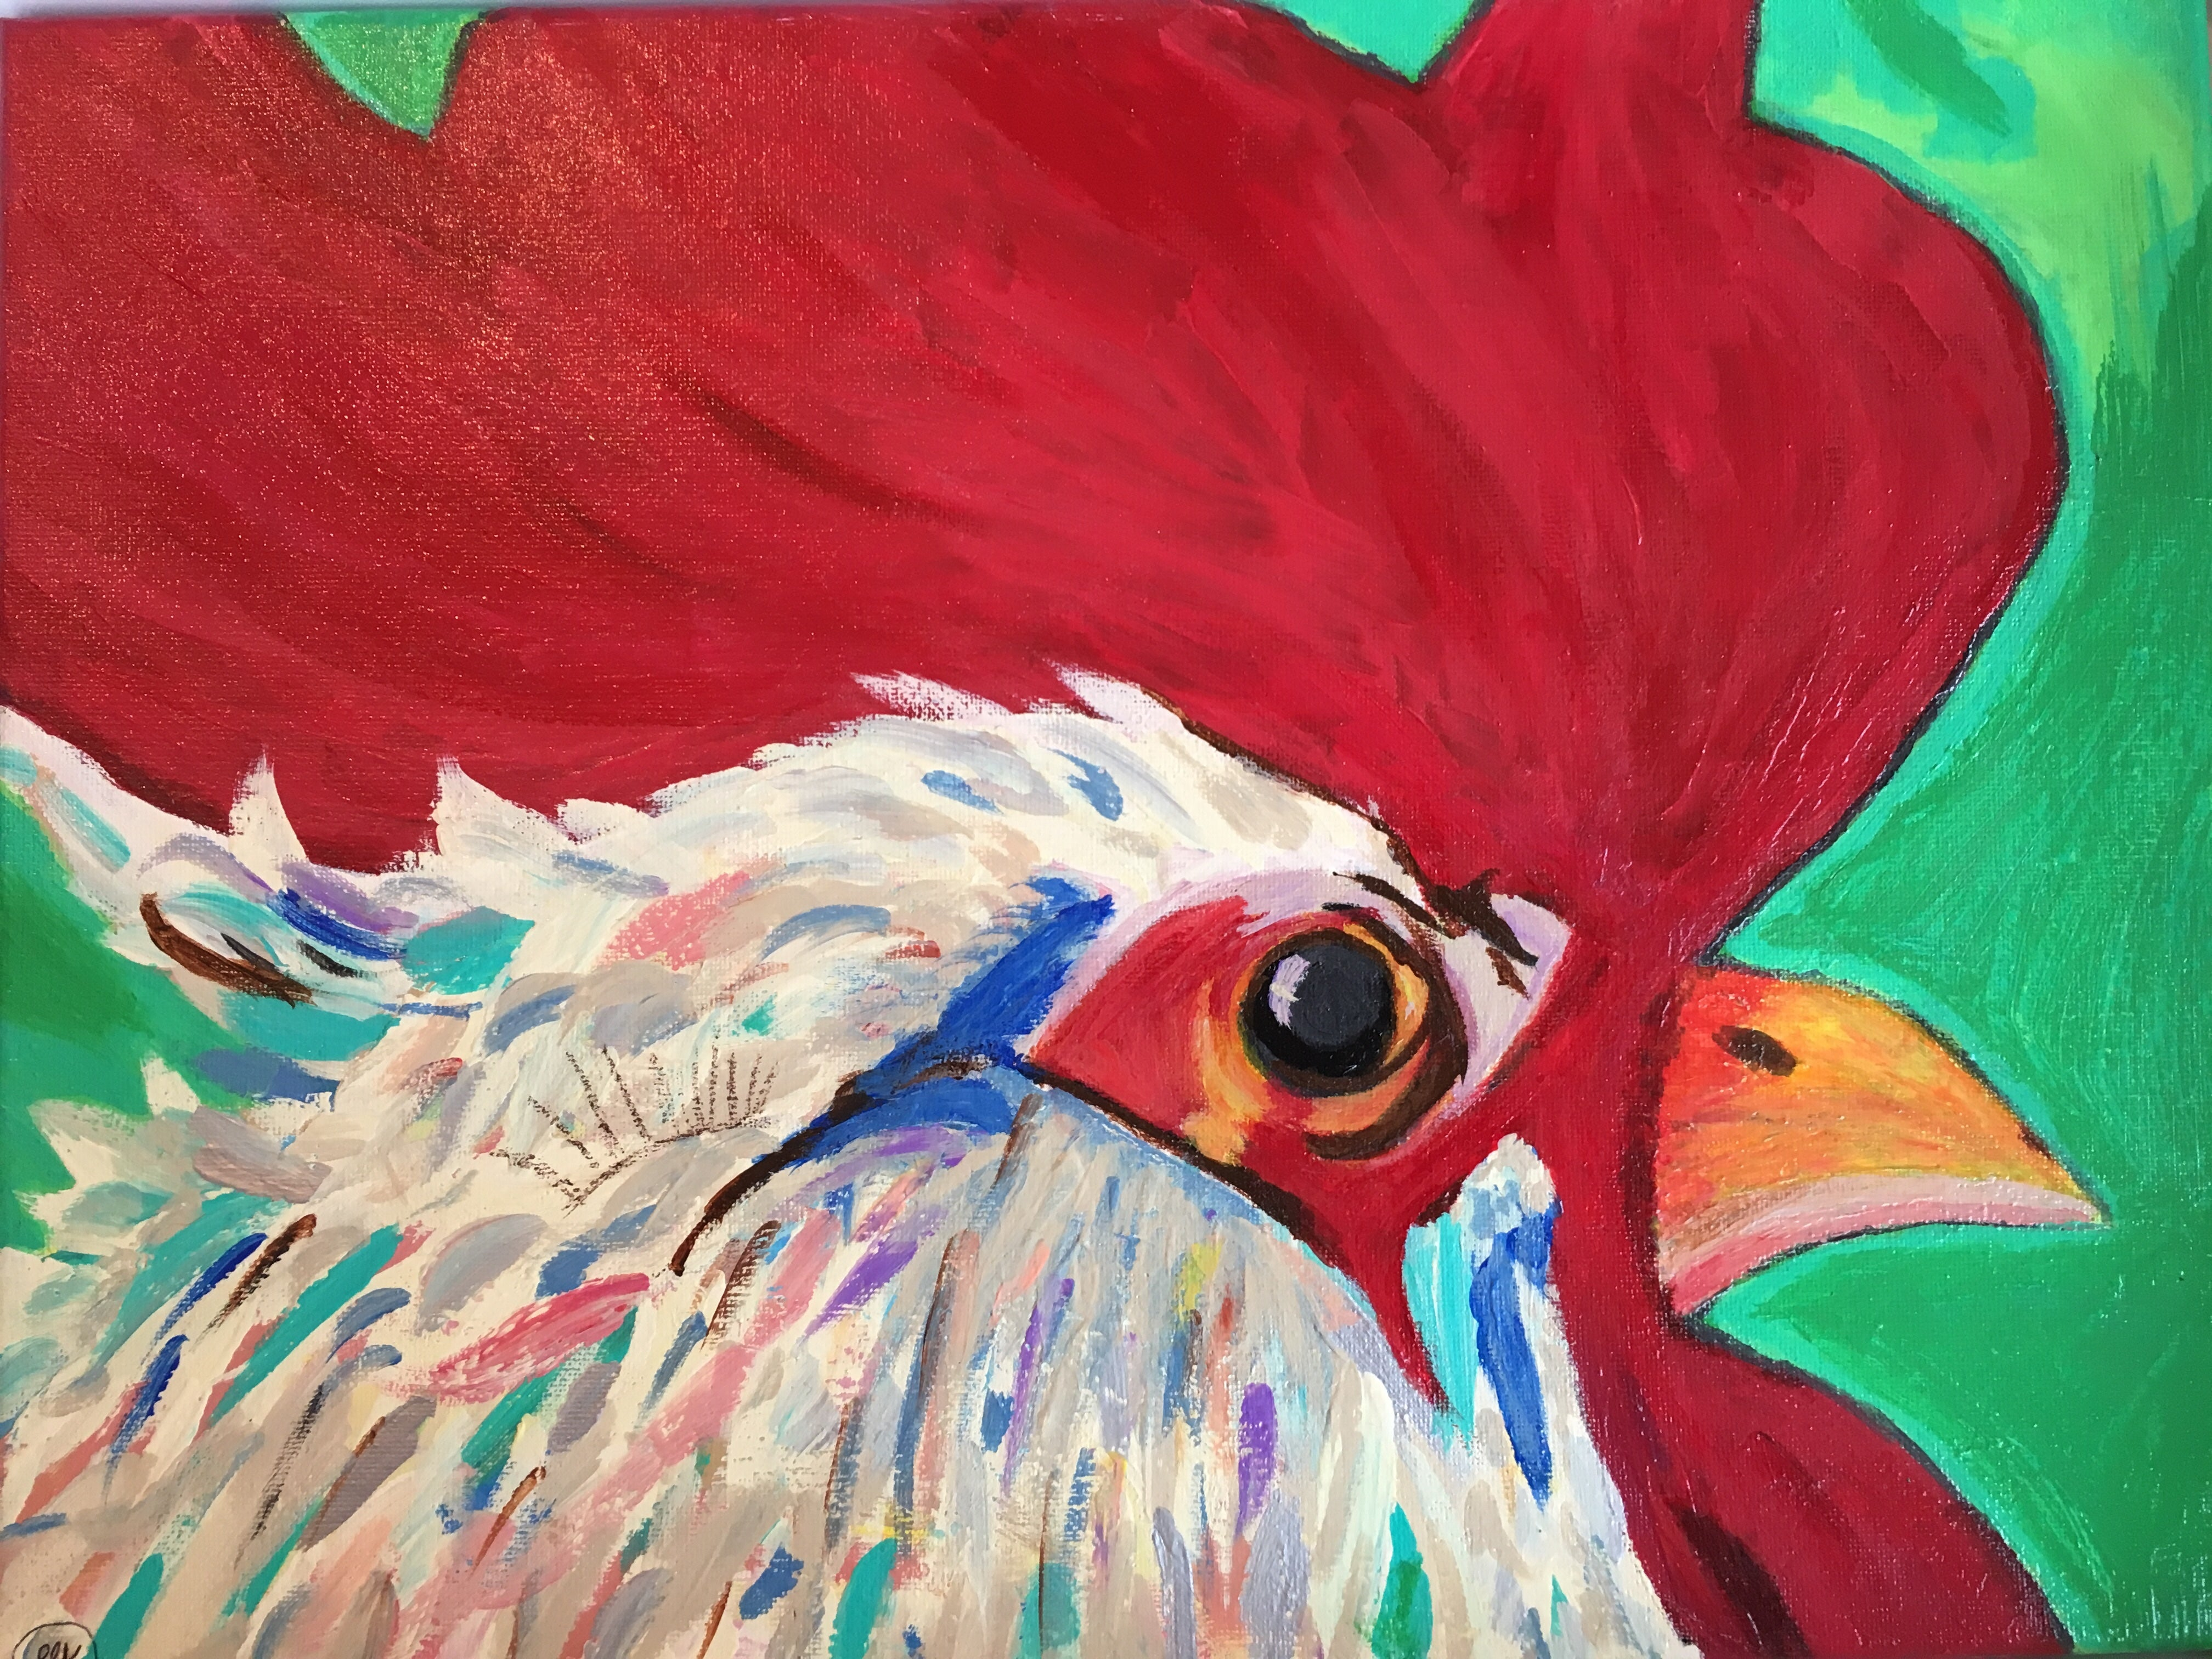 Rooster #3, acrylic painting, size: 12x16